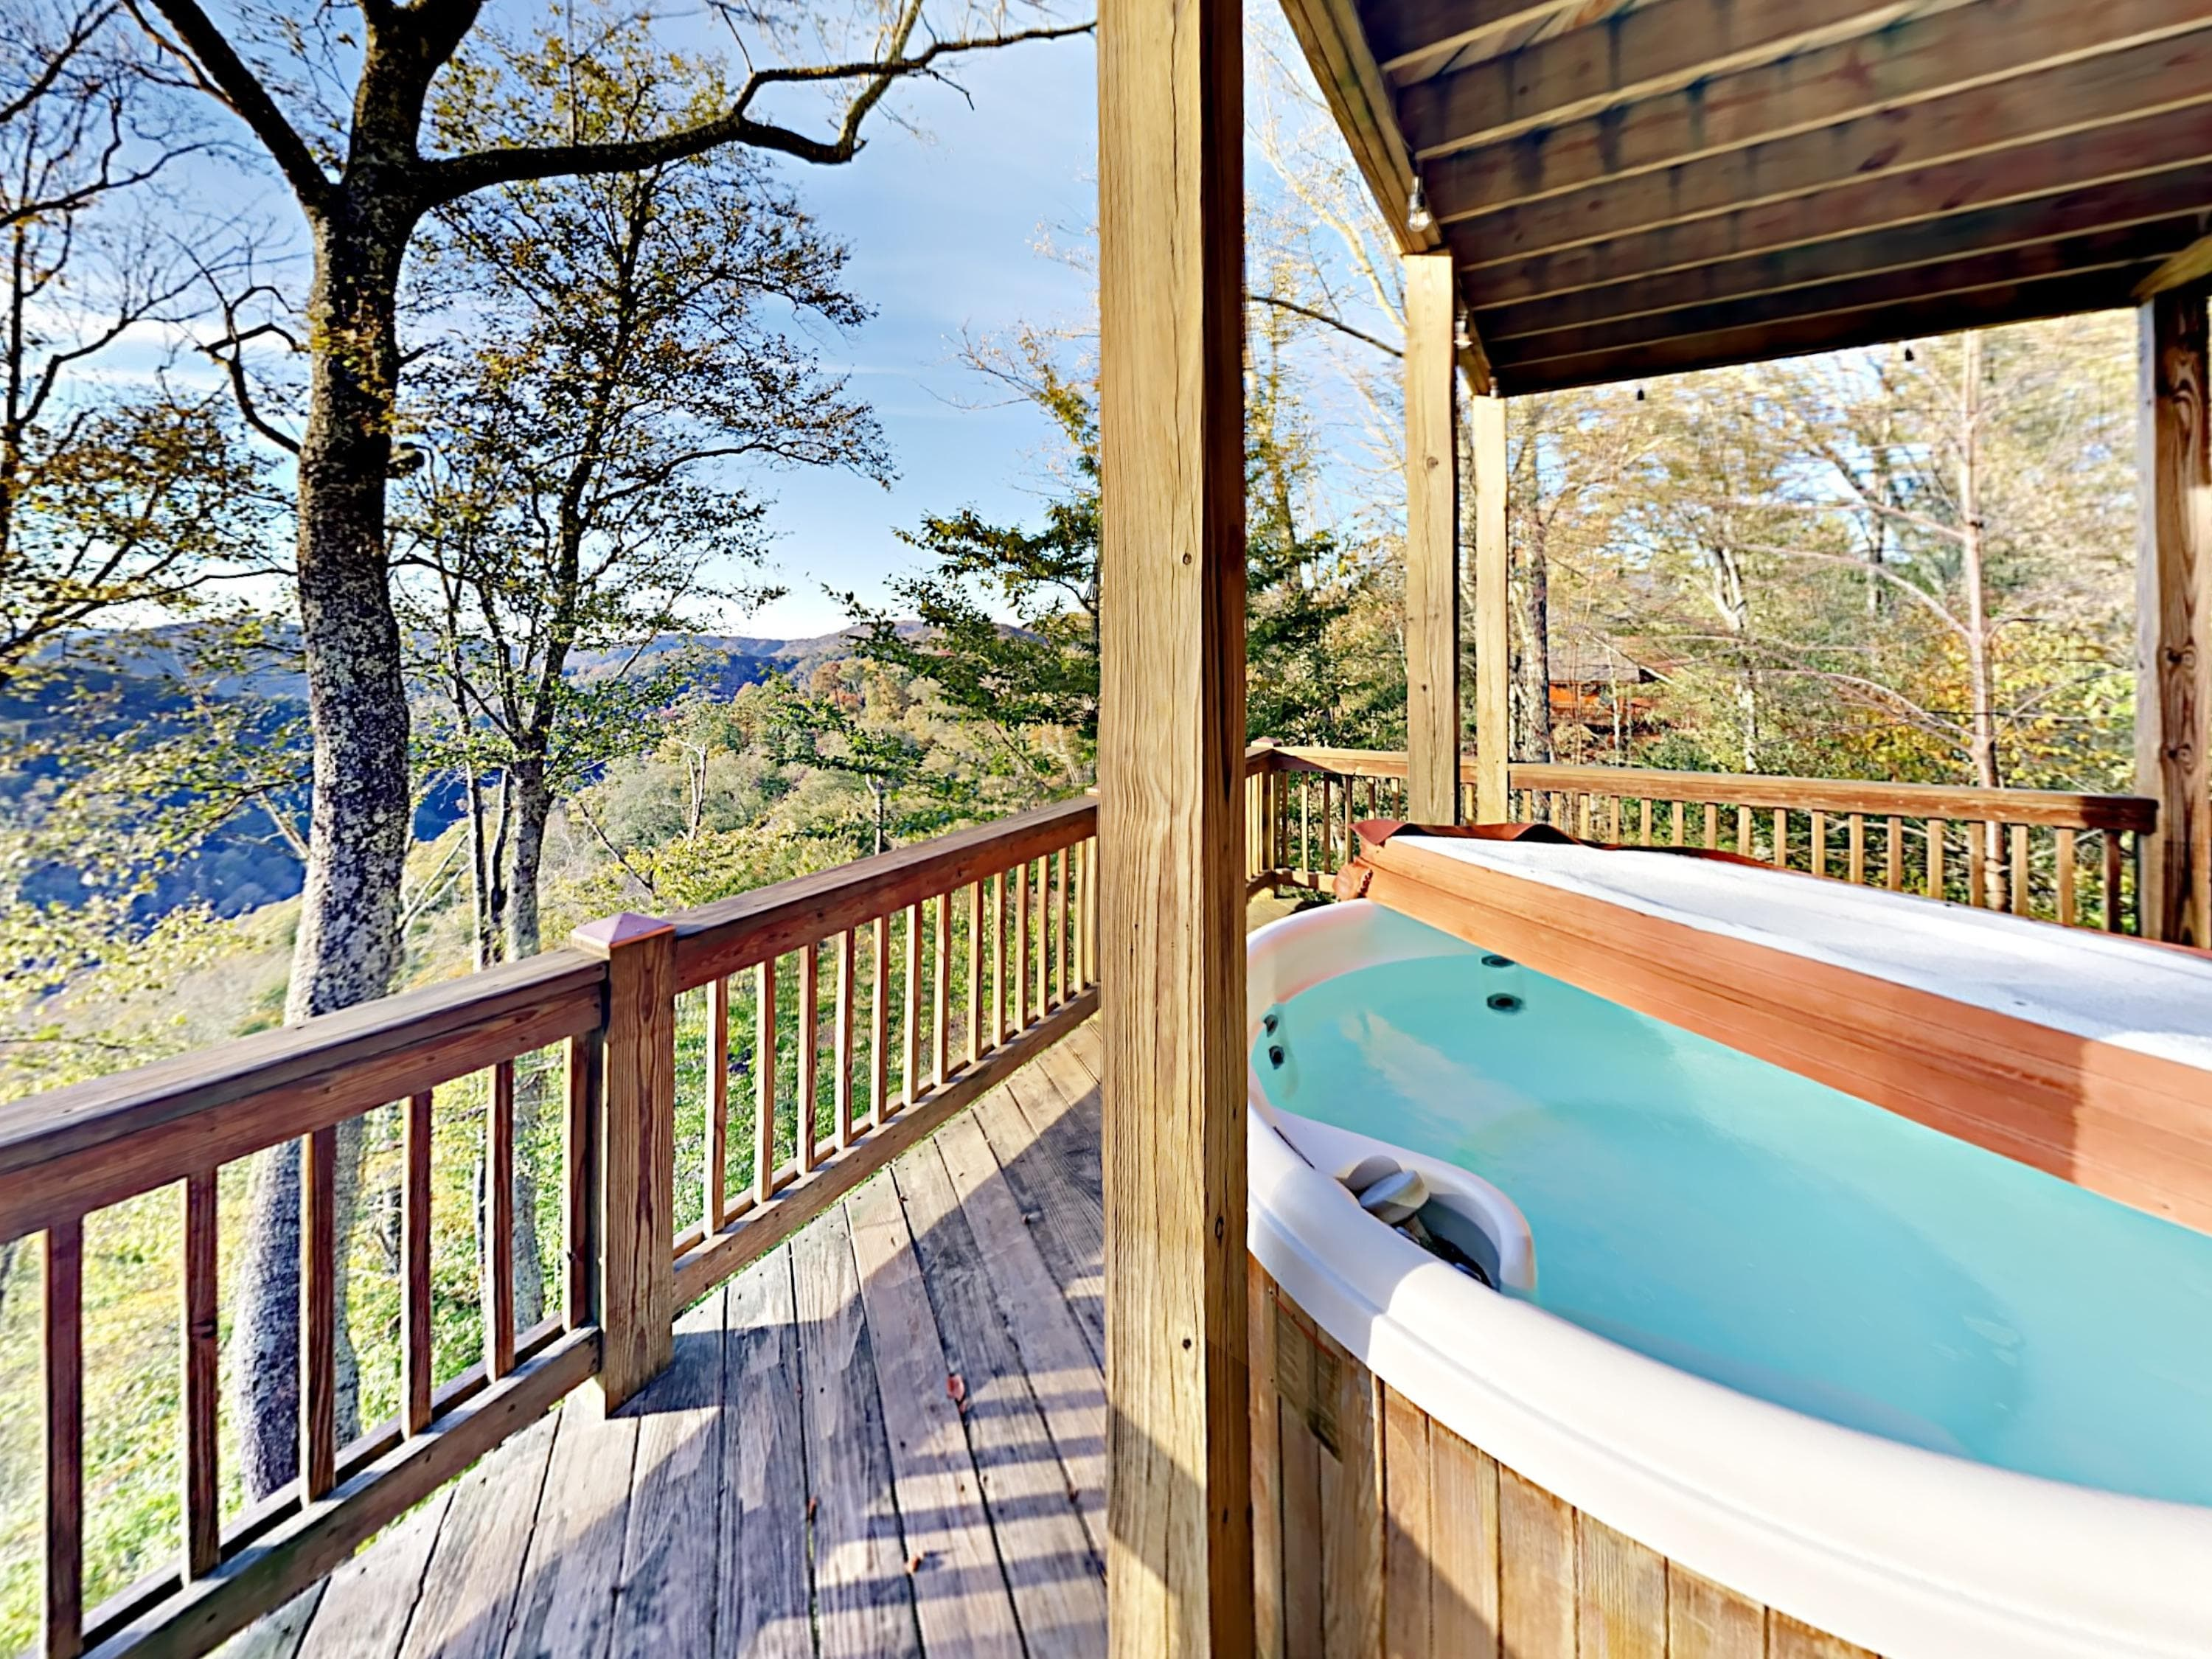 After a thrilling day of outdoor adventures, take an indulgent soak in the hot tub.